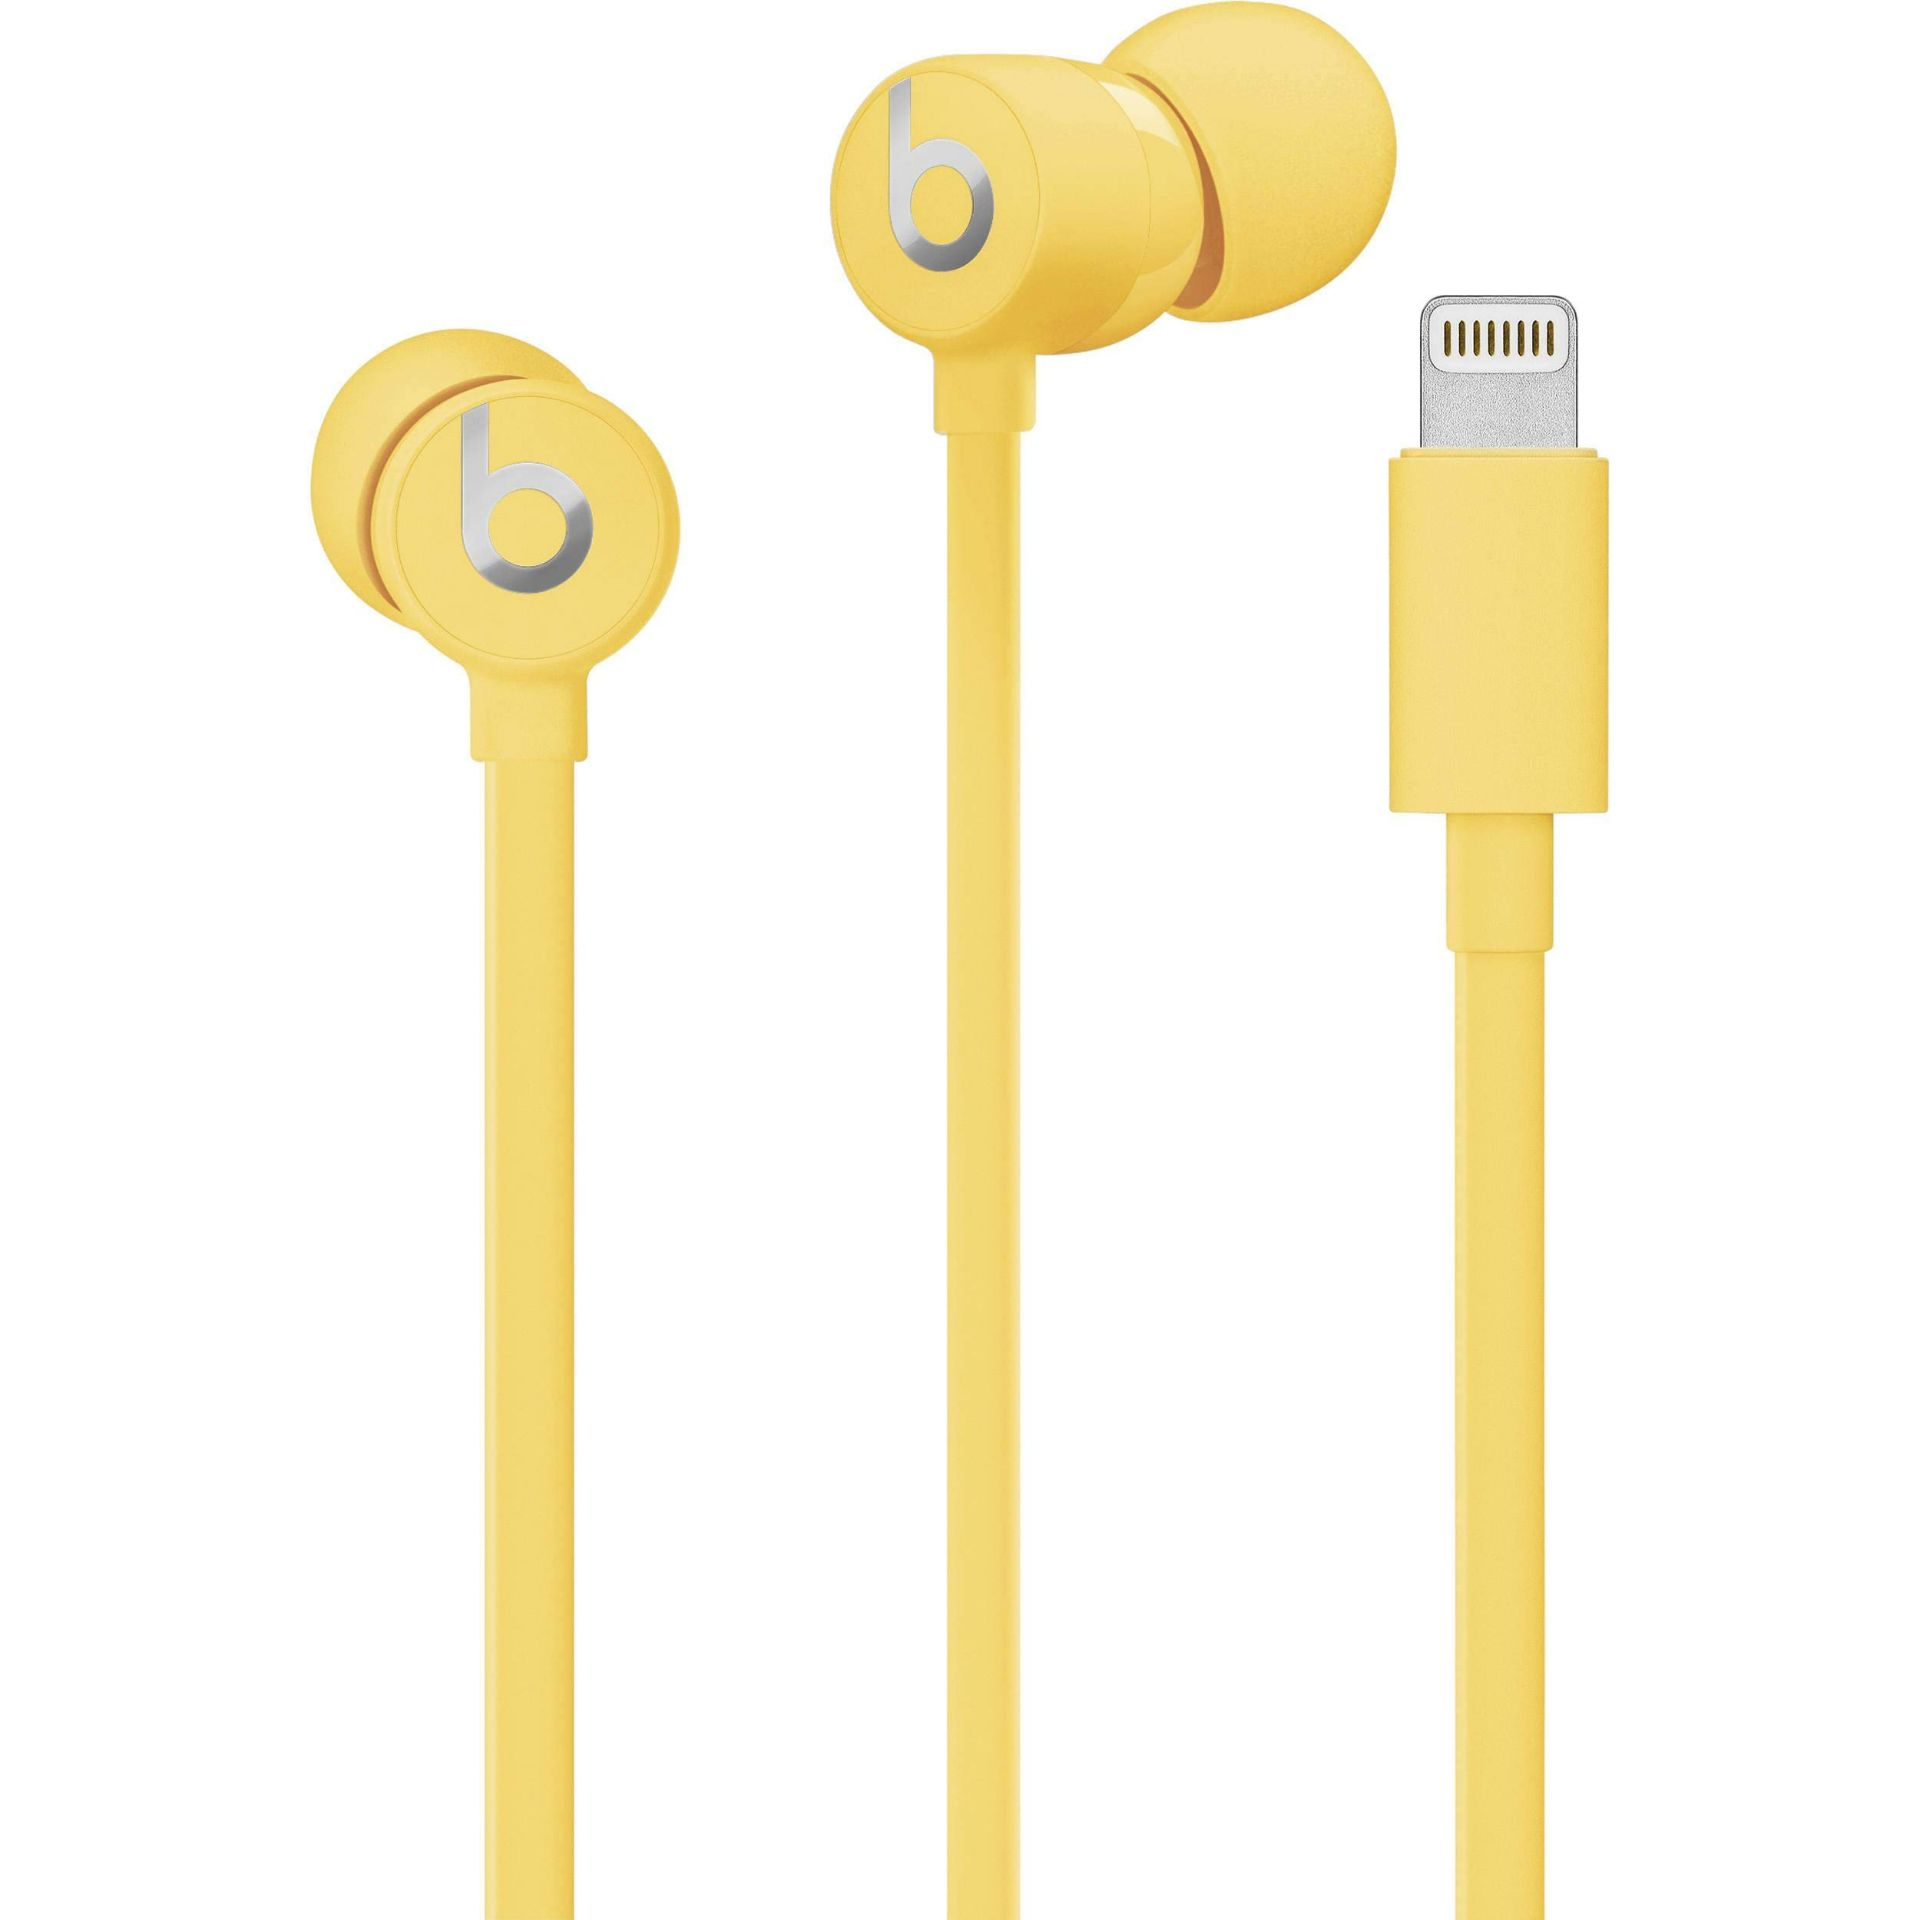 + VAT Brand New UrBeats 3 Earphones With Lightning Connector - Yellow - Ergonomic Design - High